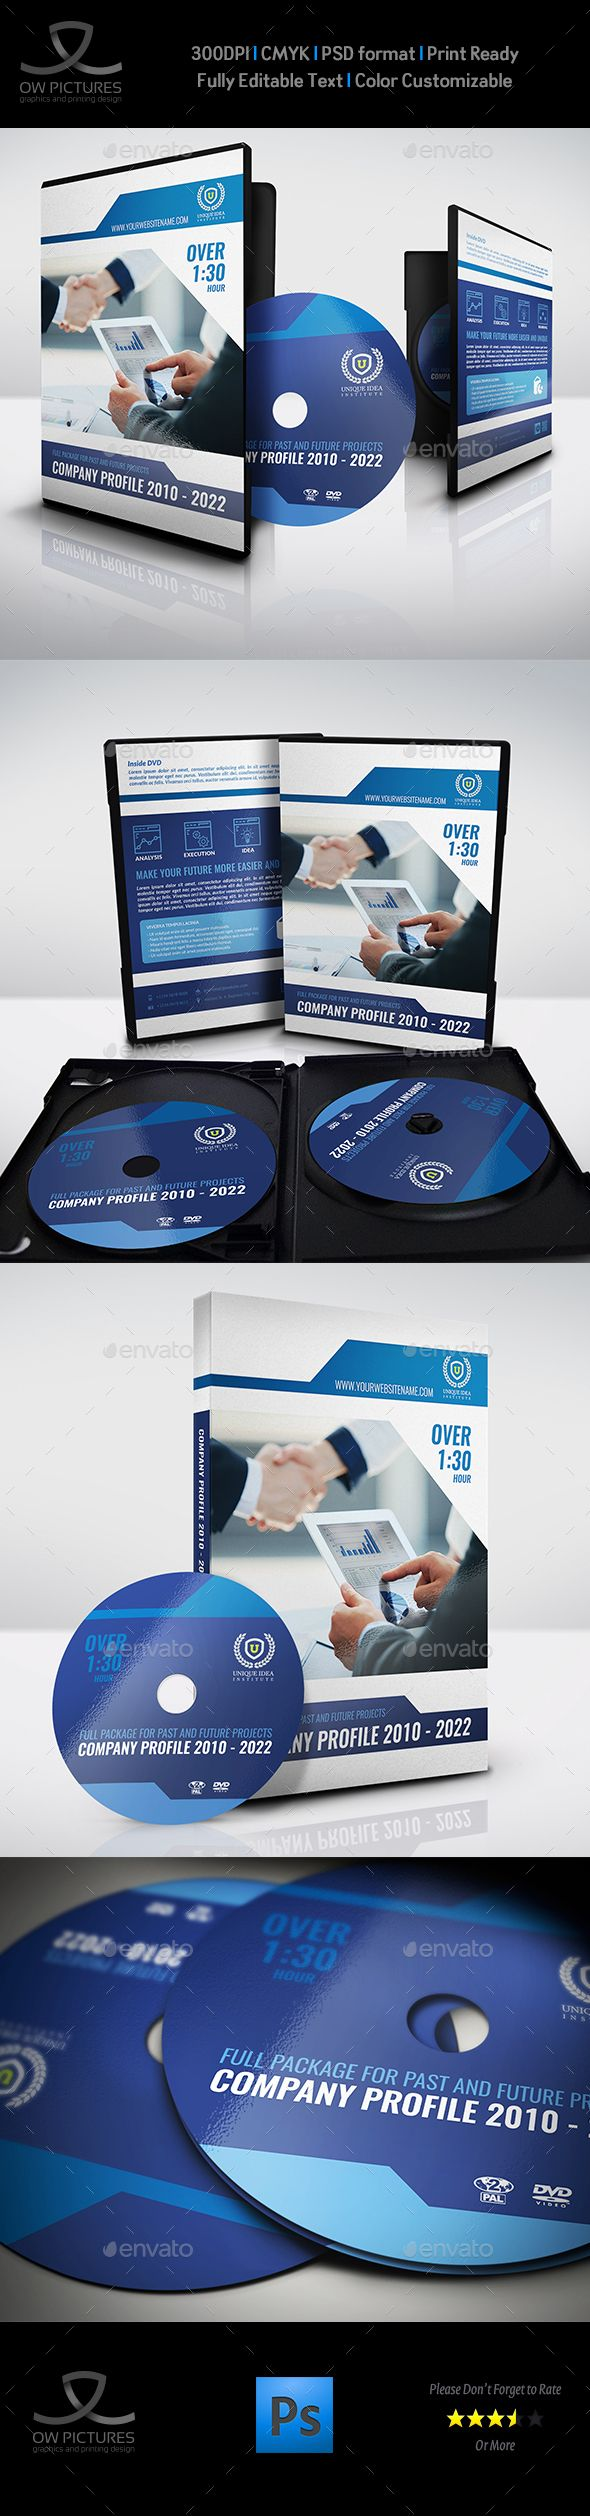 Company Profile Dvd Cover And Label Template  Label Templates